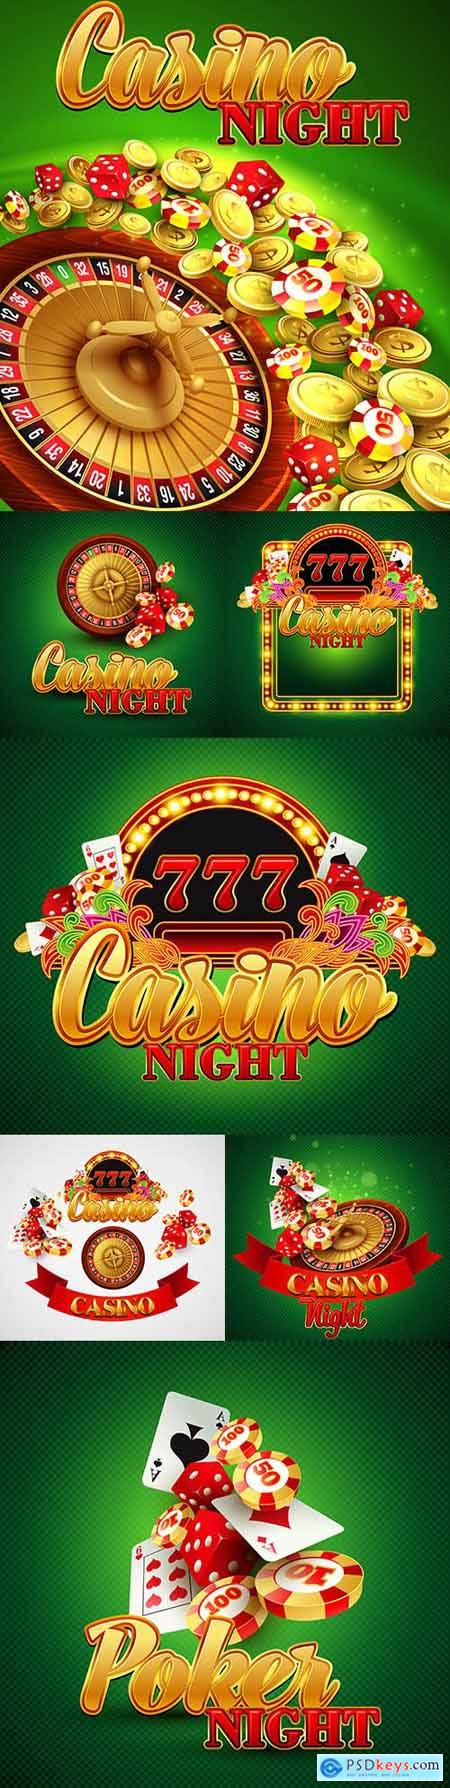 Casino background card with chips and roulette illustration